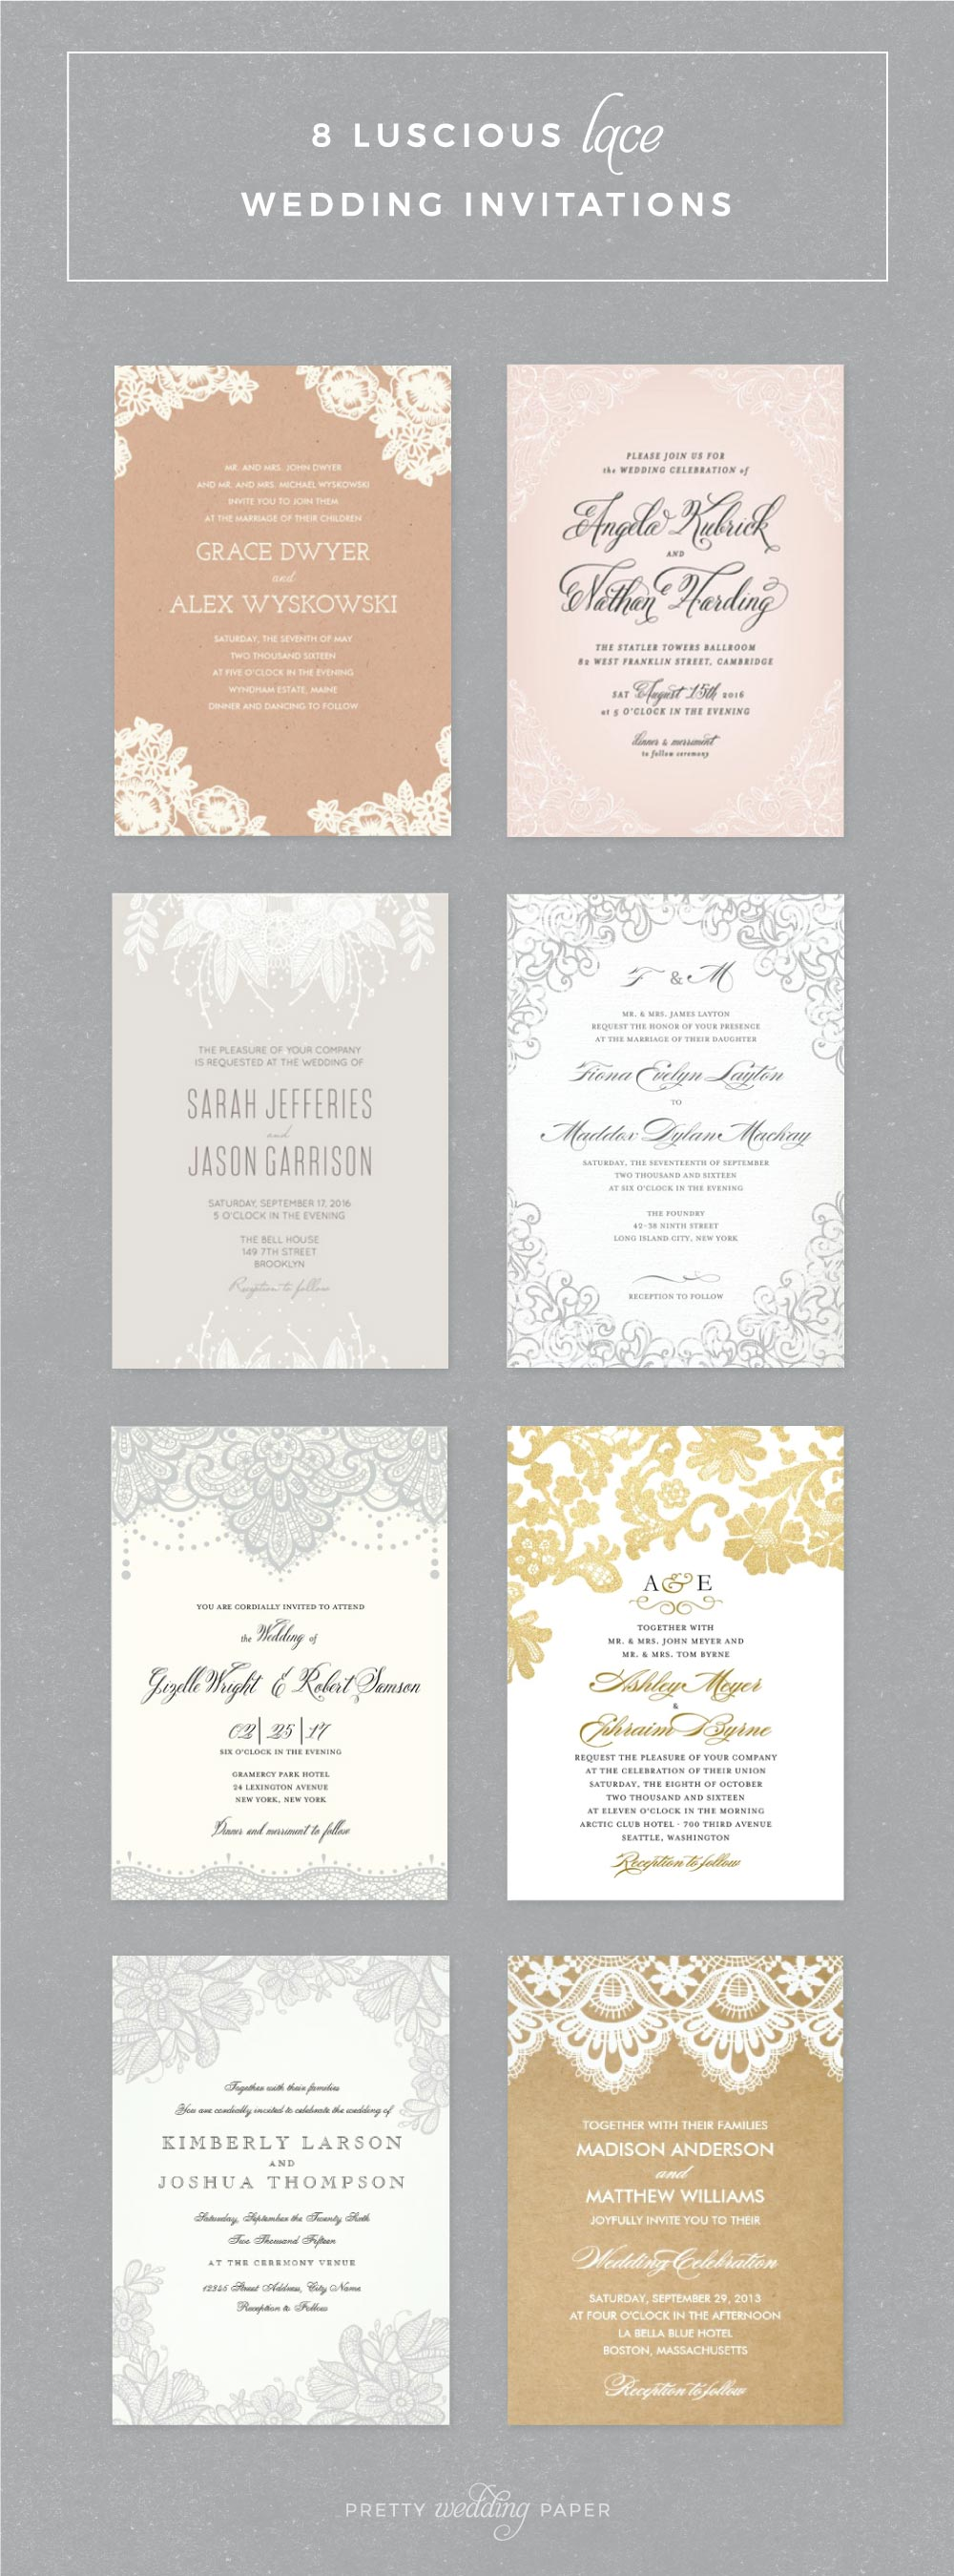 8 Lovely Lace Wedding Invitations: Ideas for Romantic Weddings